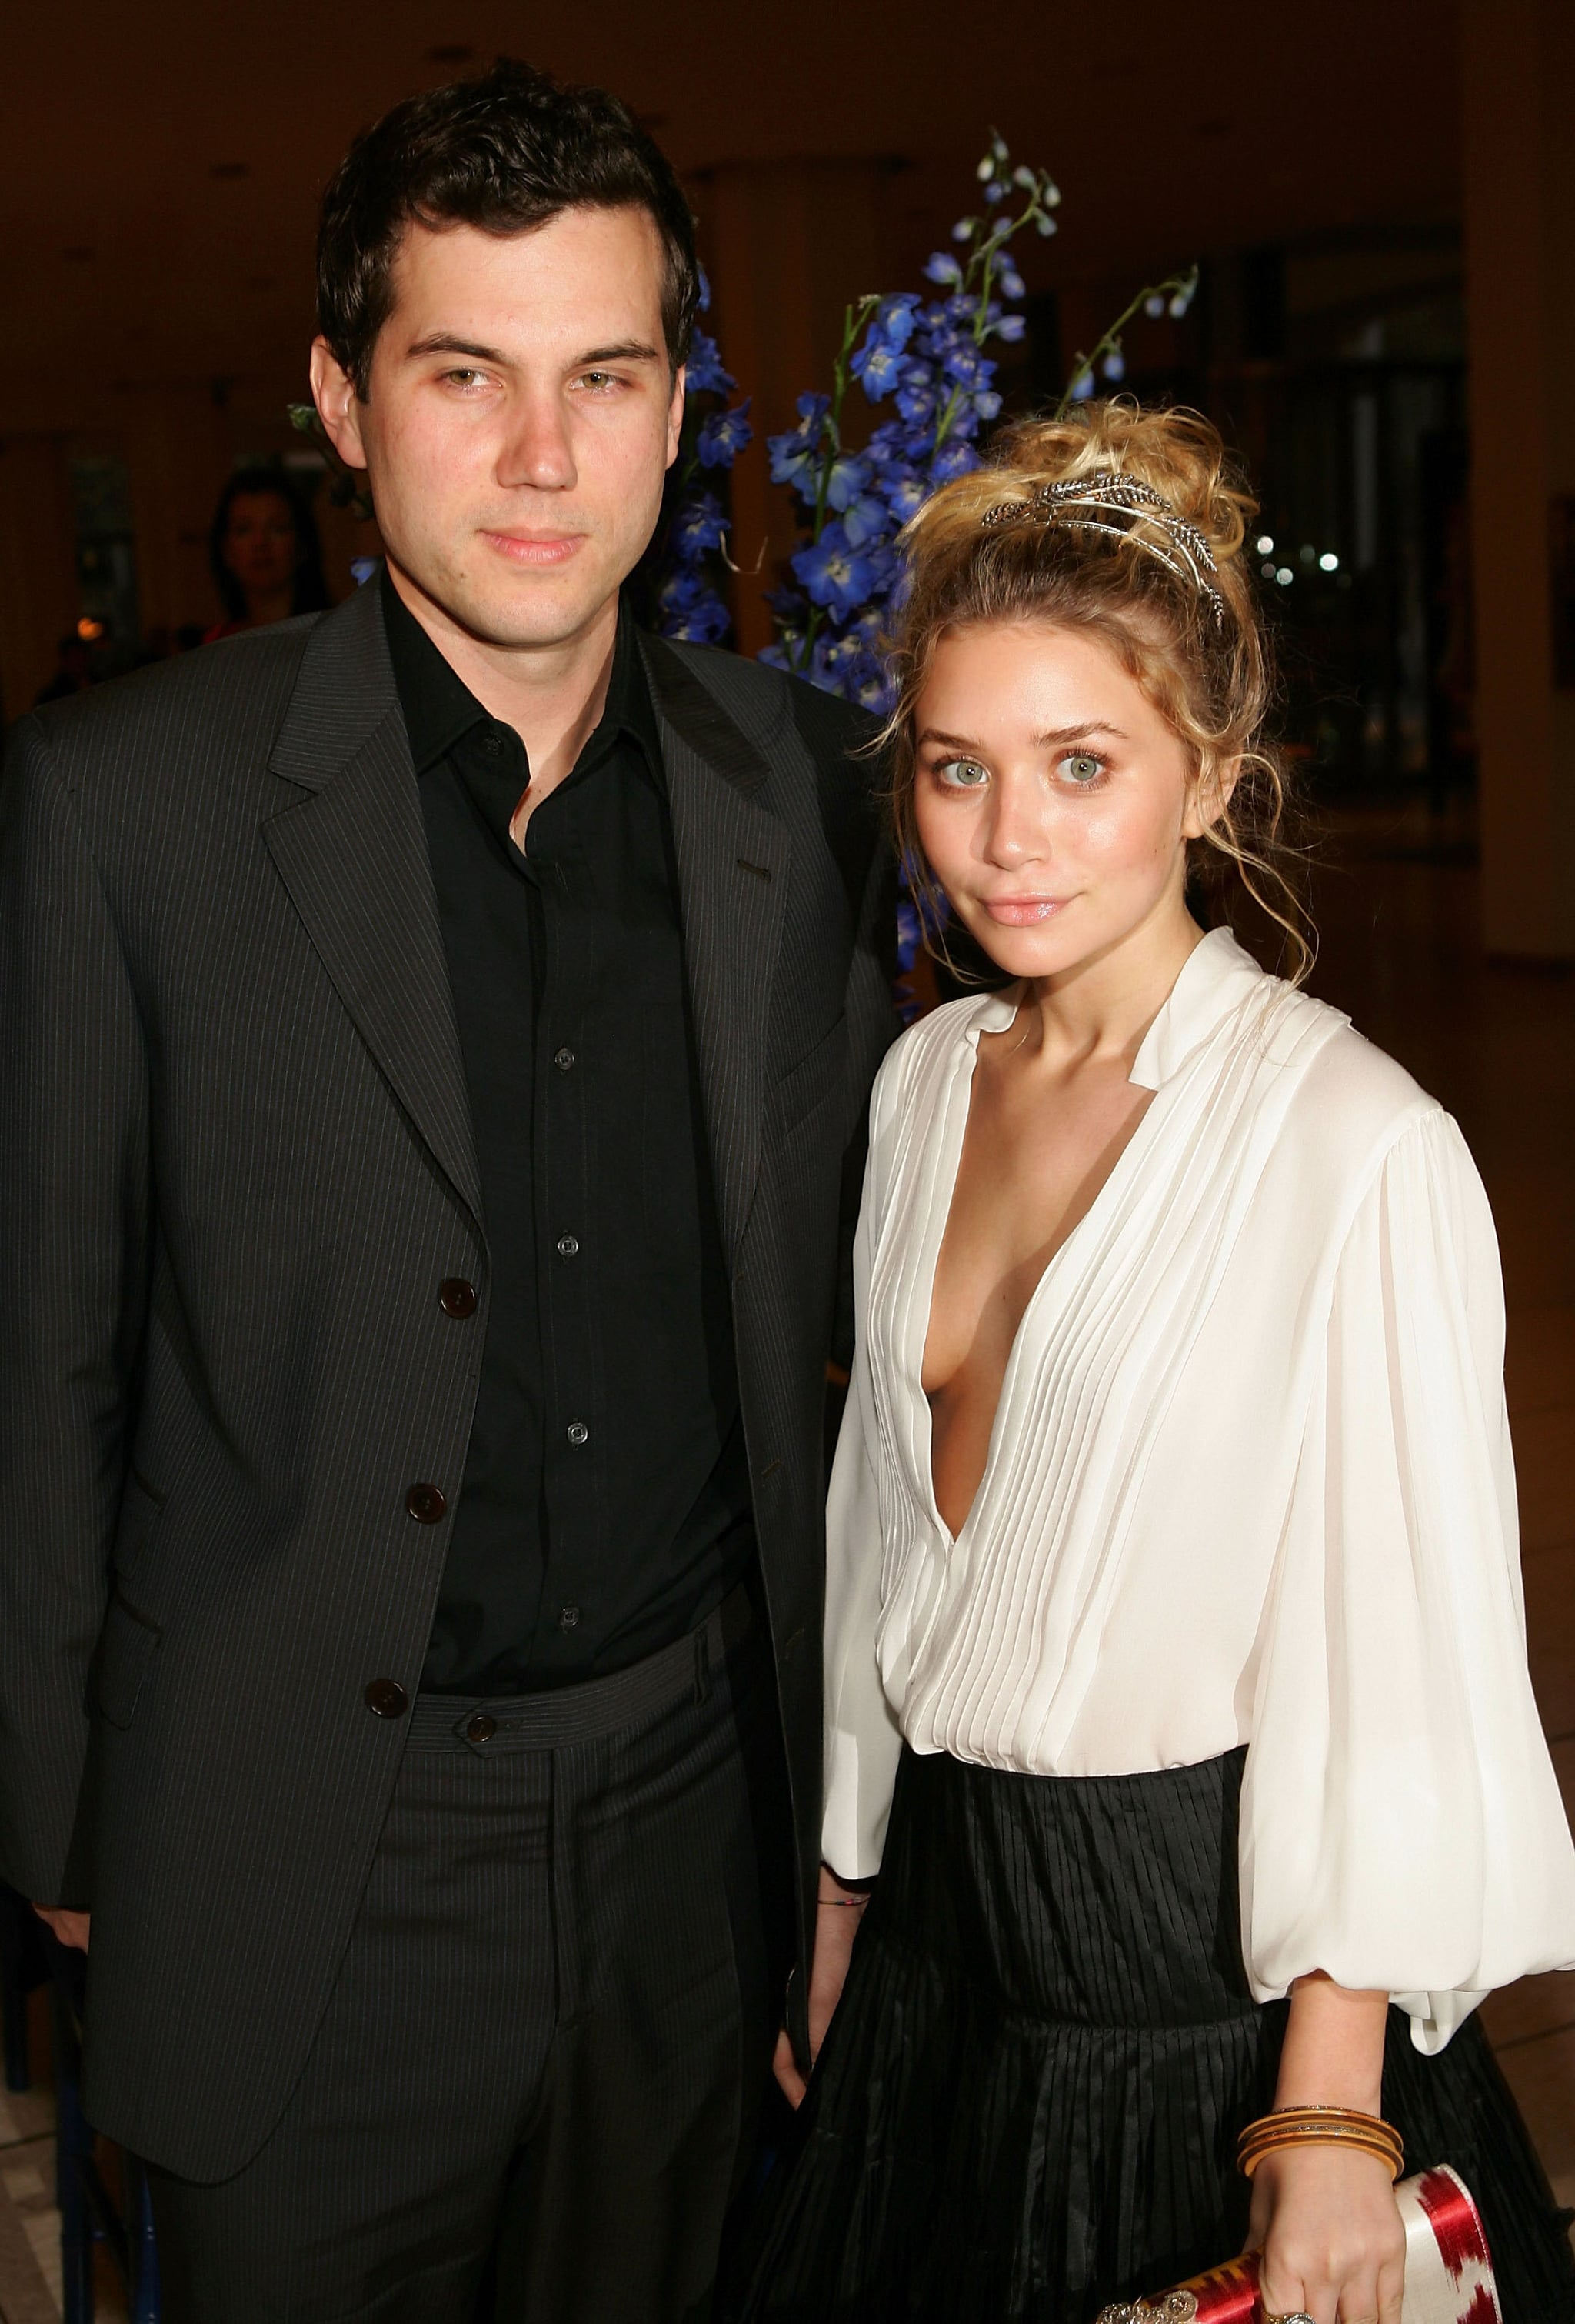 who are the olsen twins dating 2013